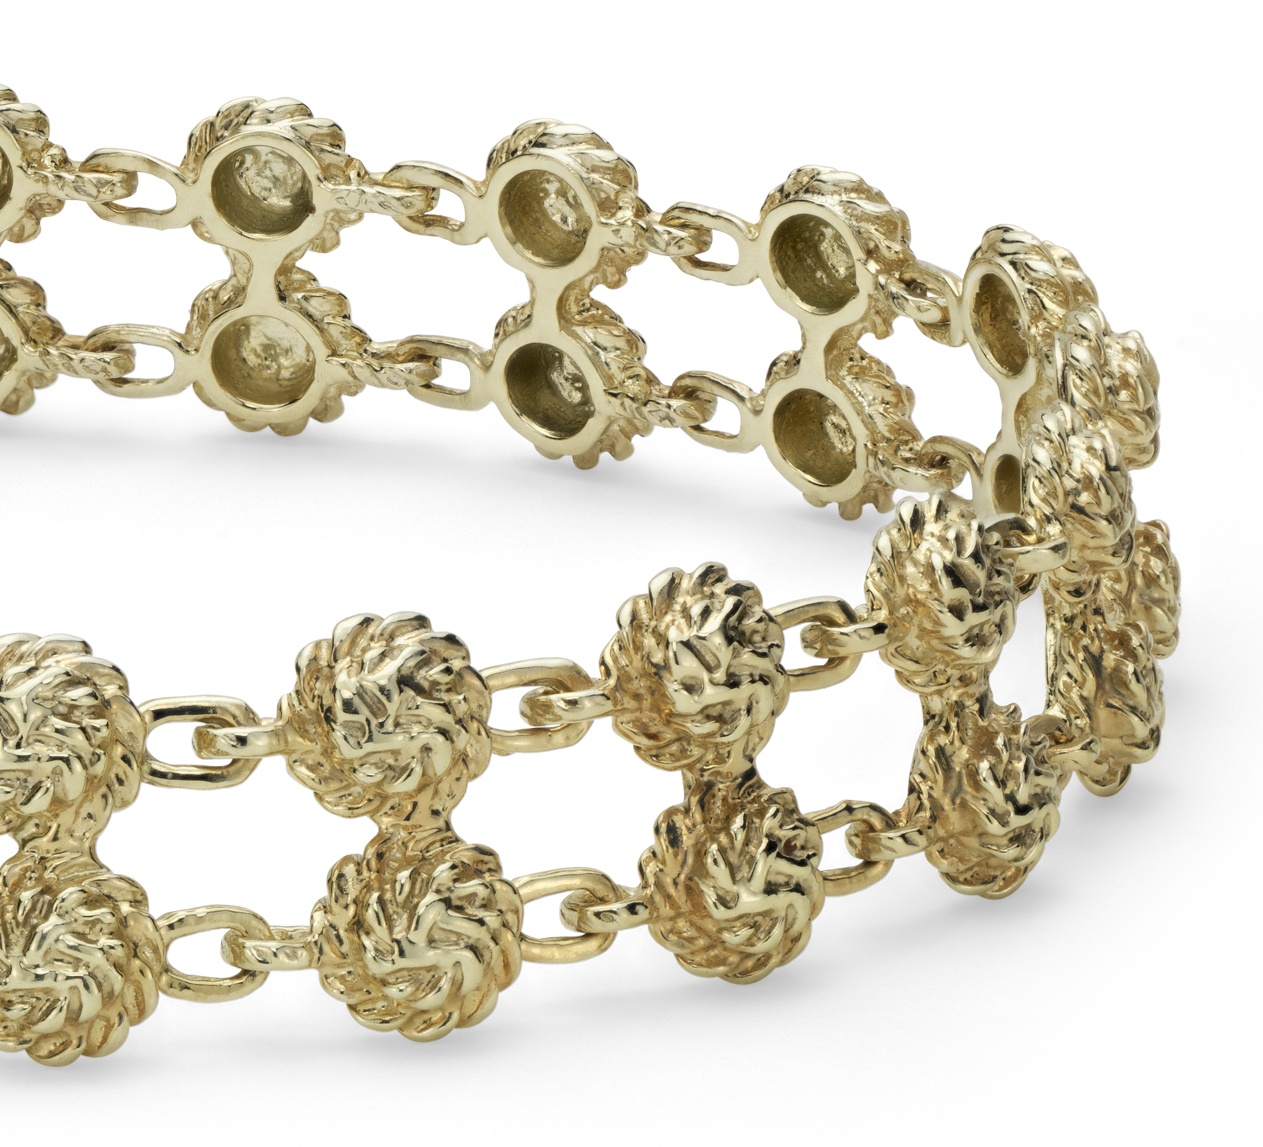 Rosette Double Row Bracelet in 14k Yellow Gold